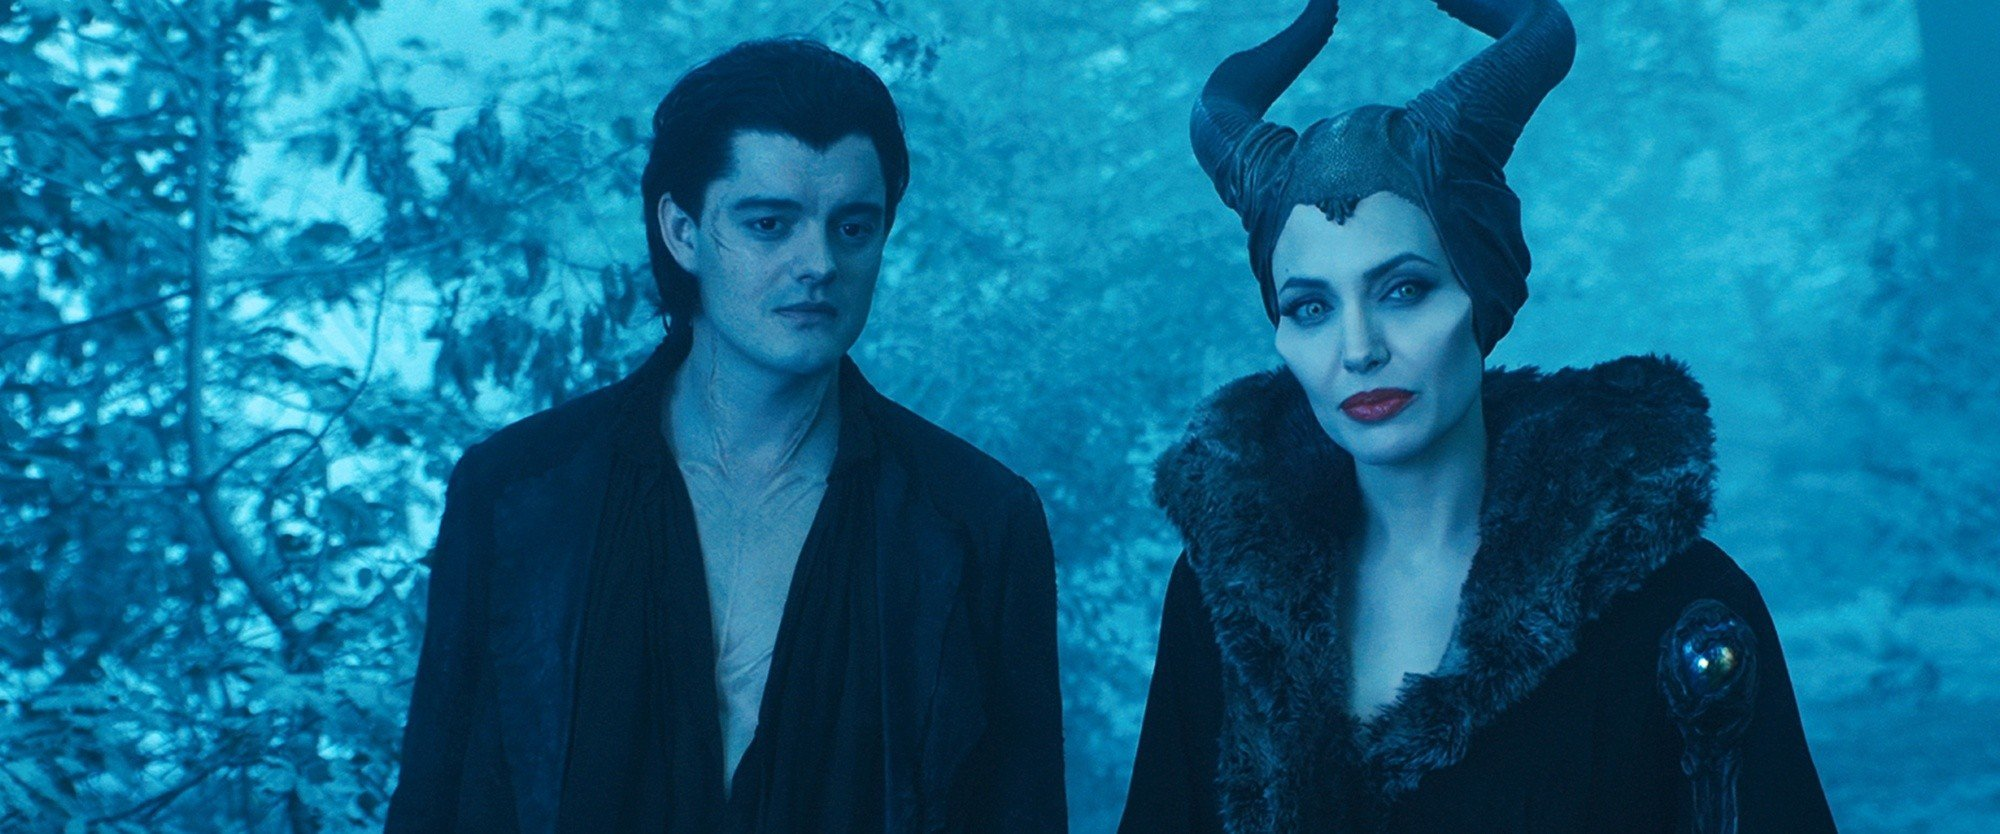 Sam Riley stars as Diaval and Angelina Jolie stars as Maleficent in Walt Disney Pictures' Maleficent (2014)